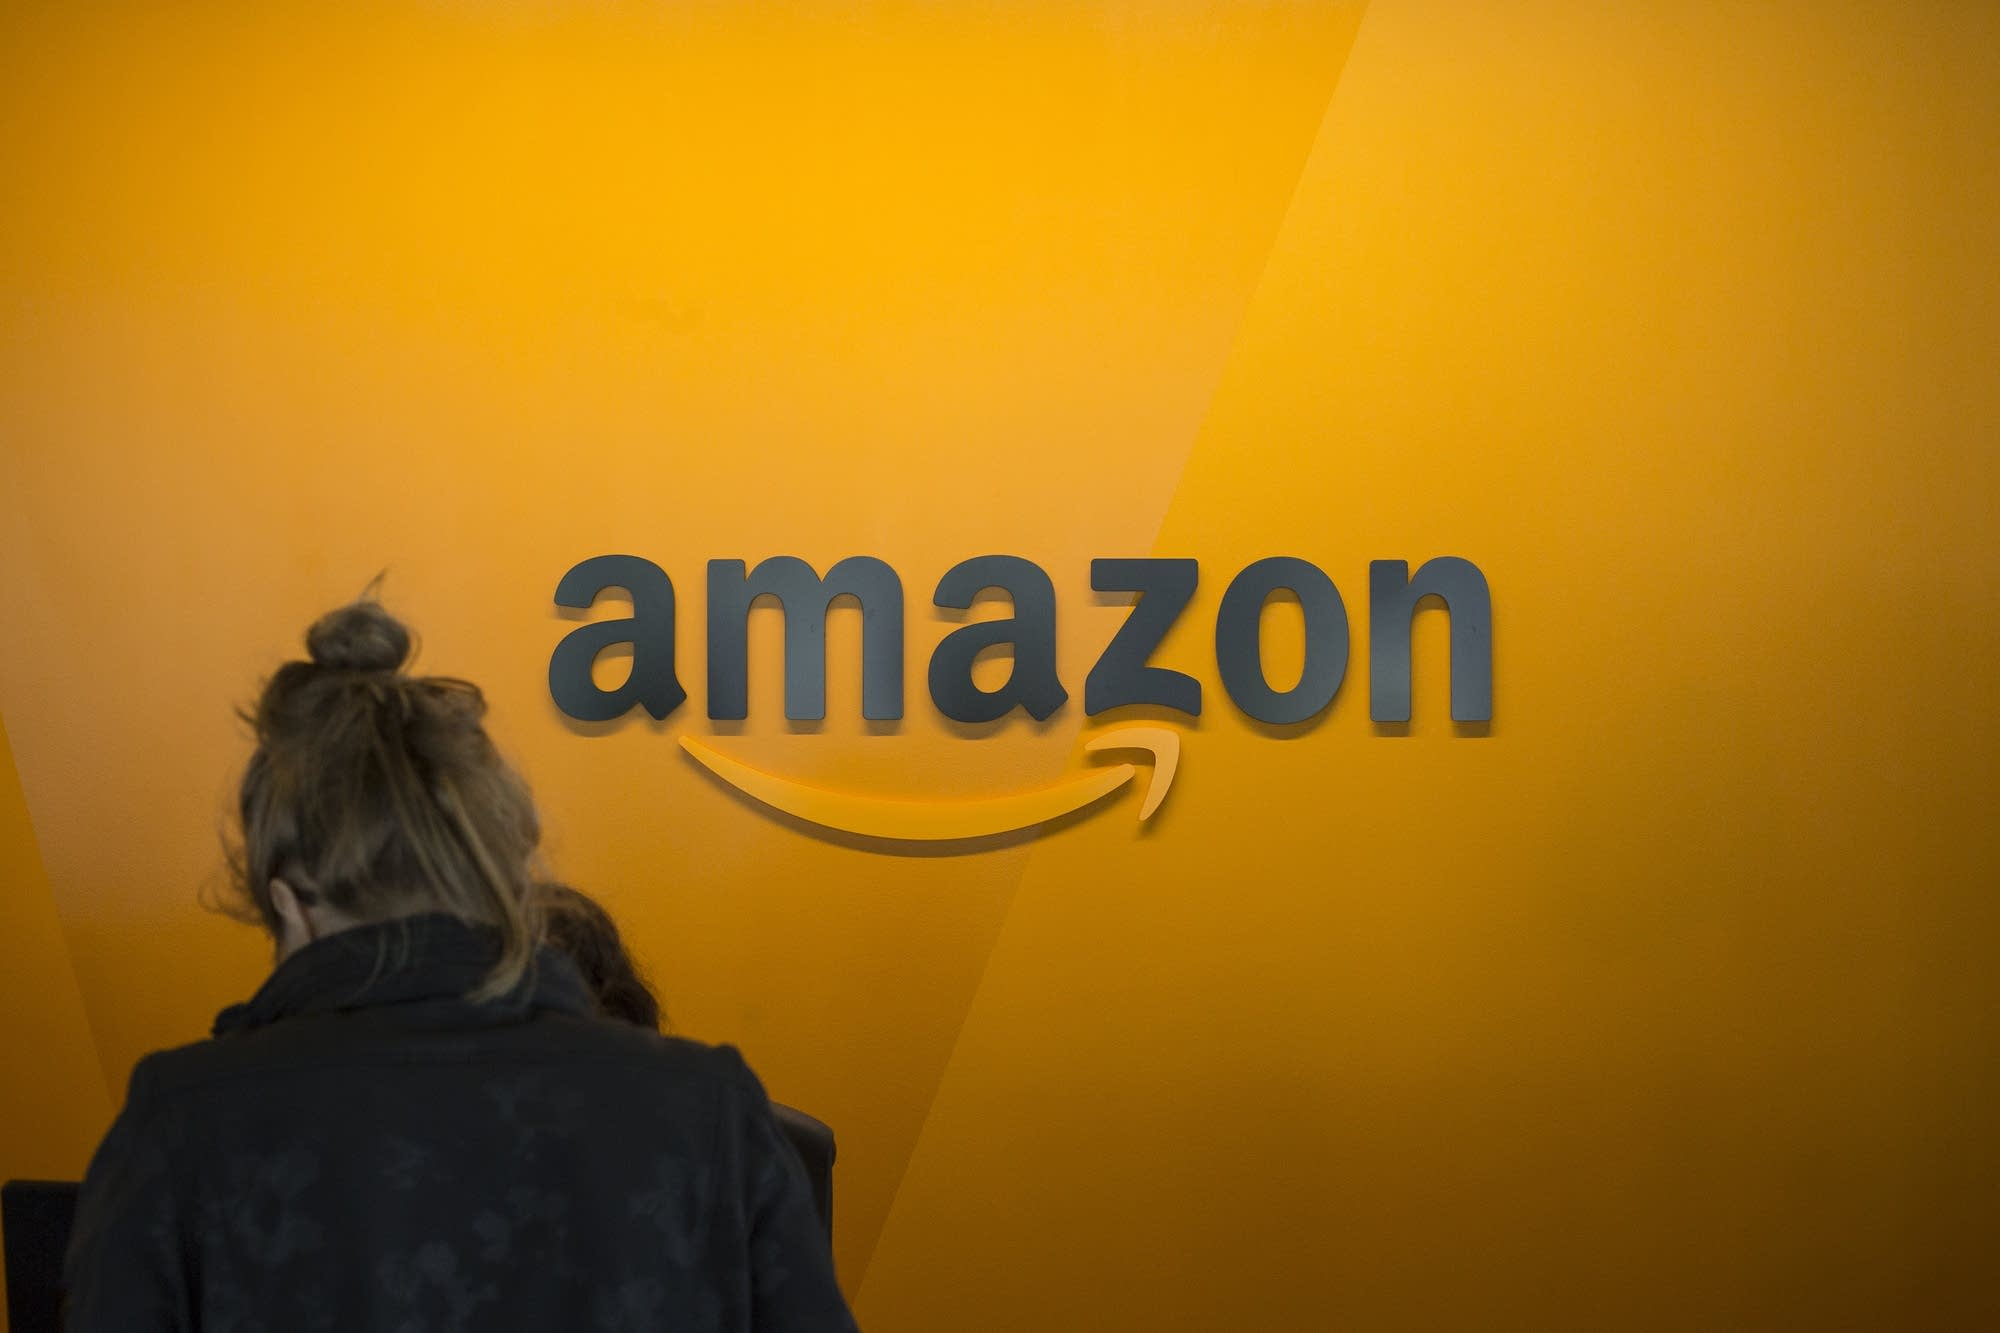 Amazon to add 3000 tech jobs in Vancouver, Canada